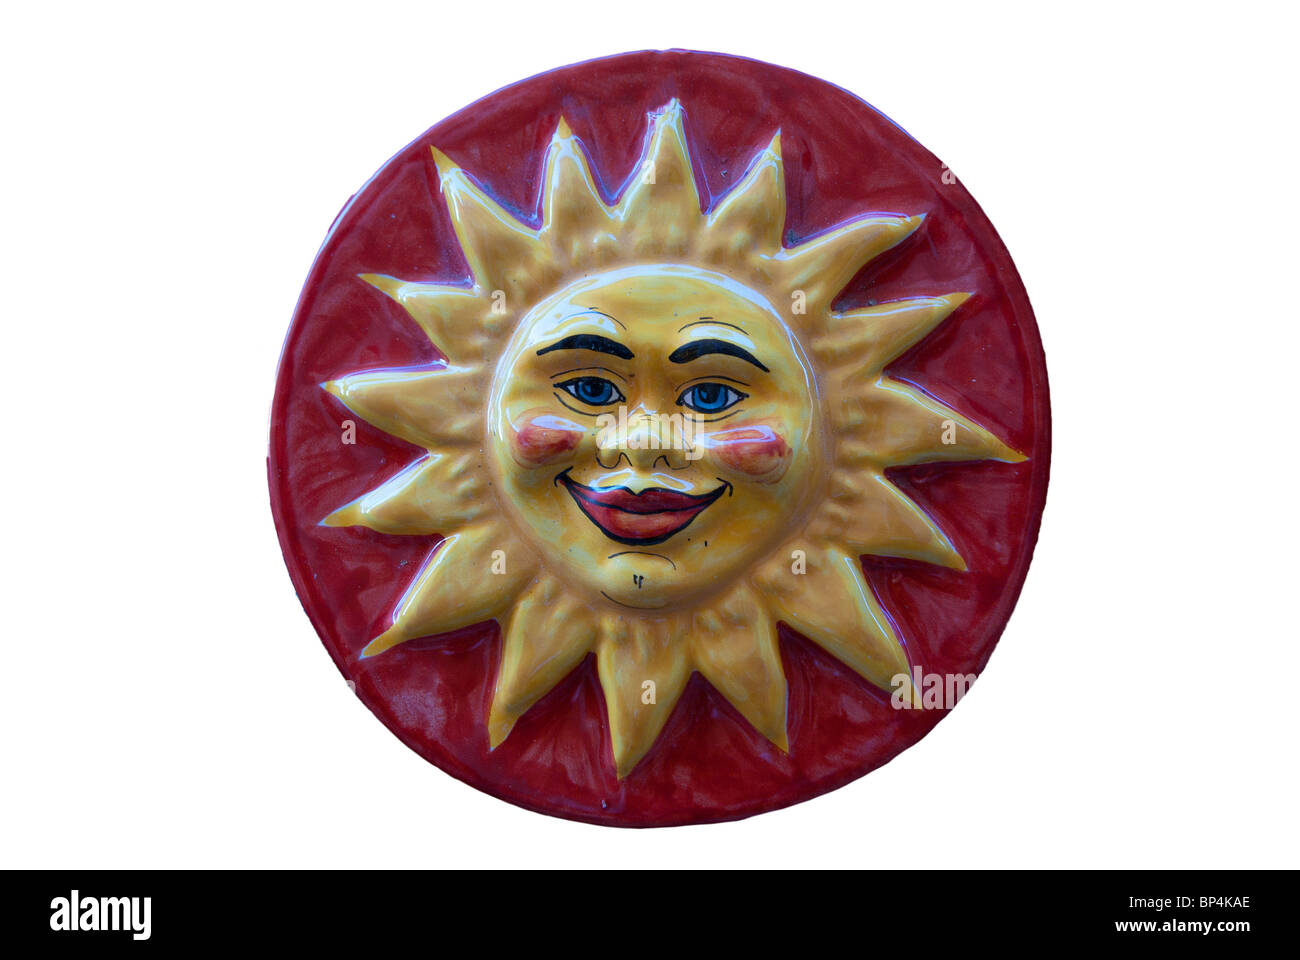 Ceramic adornment Red sun smiles - Stock Image